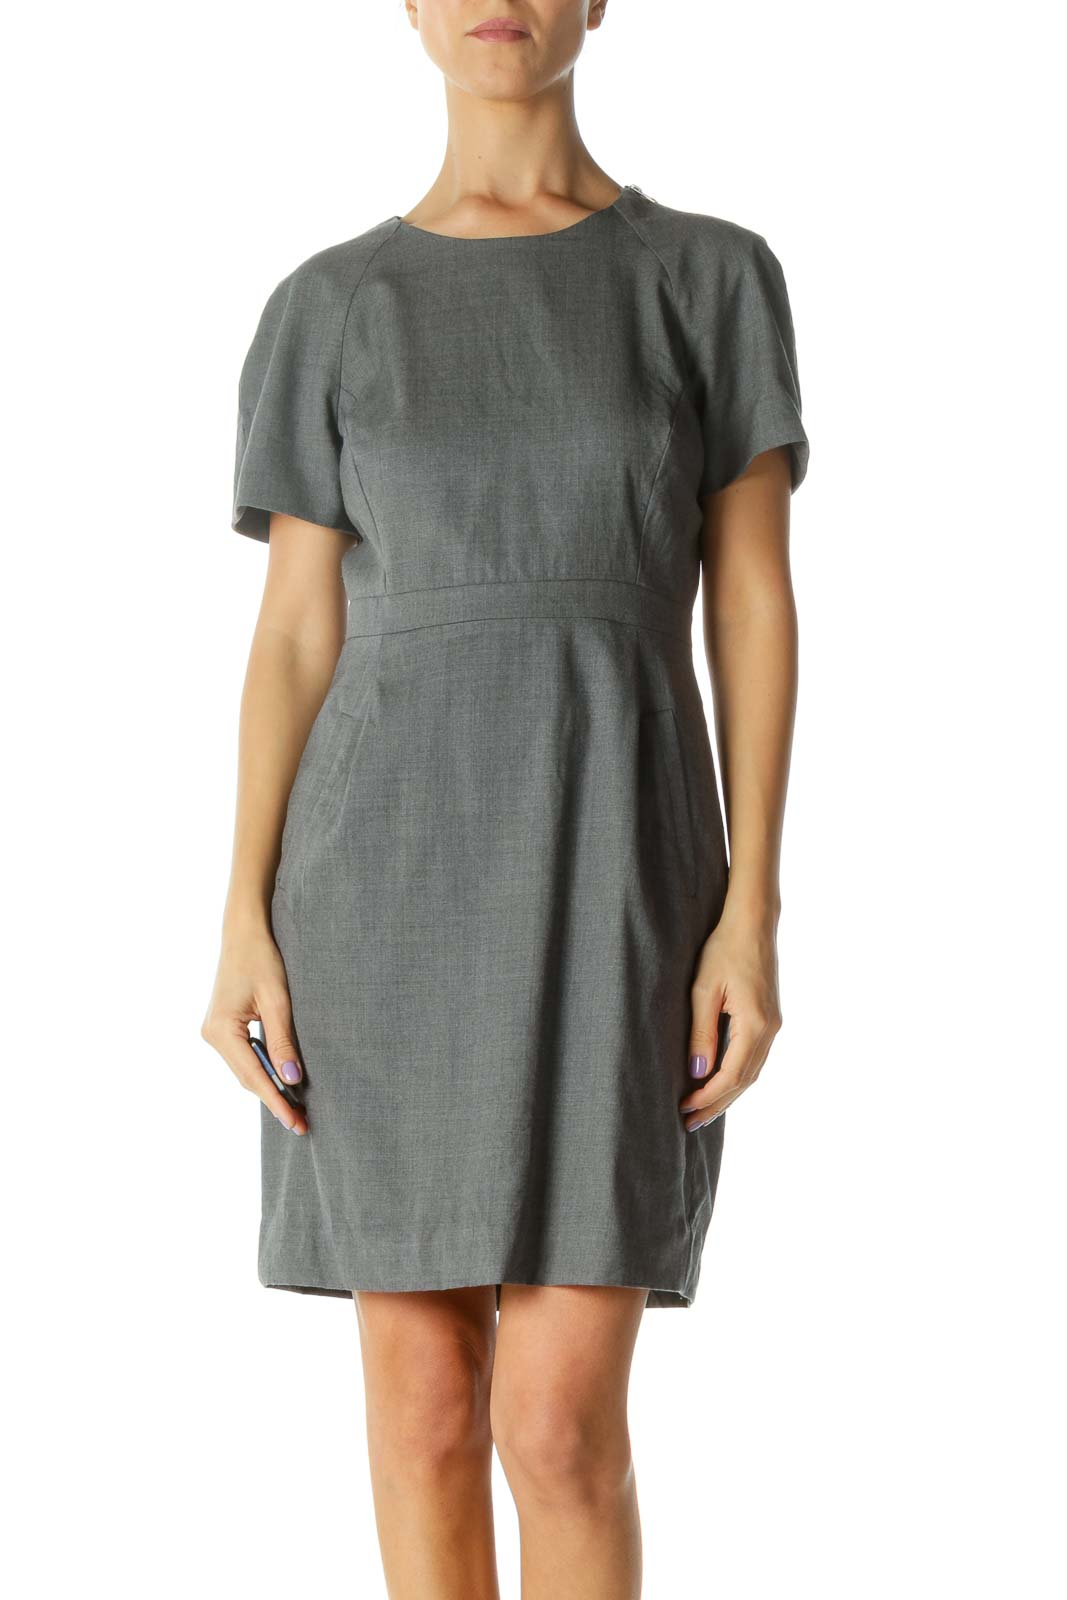 Gray Short Sleeve Work Dress